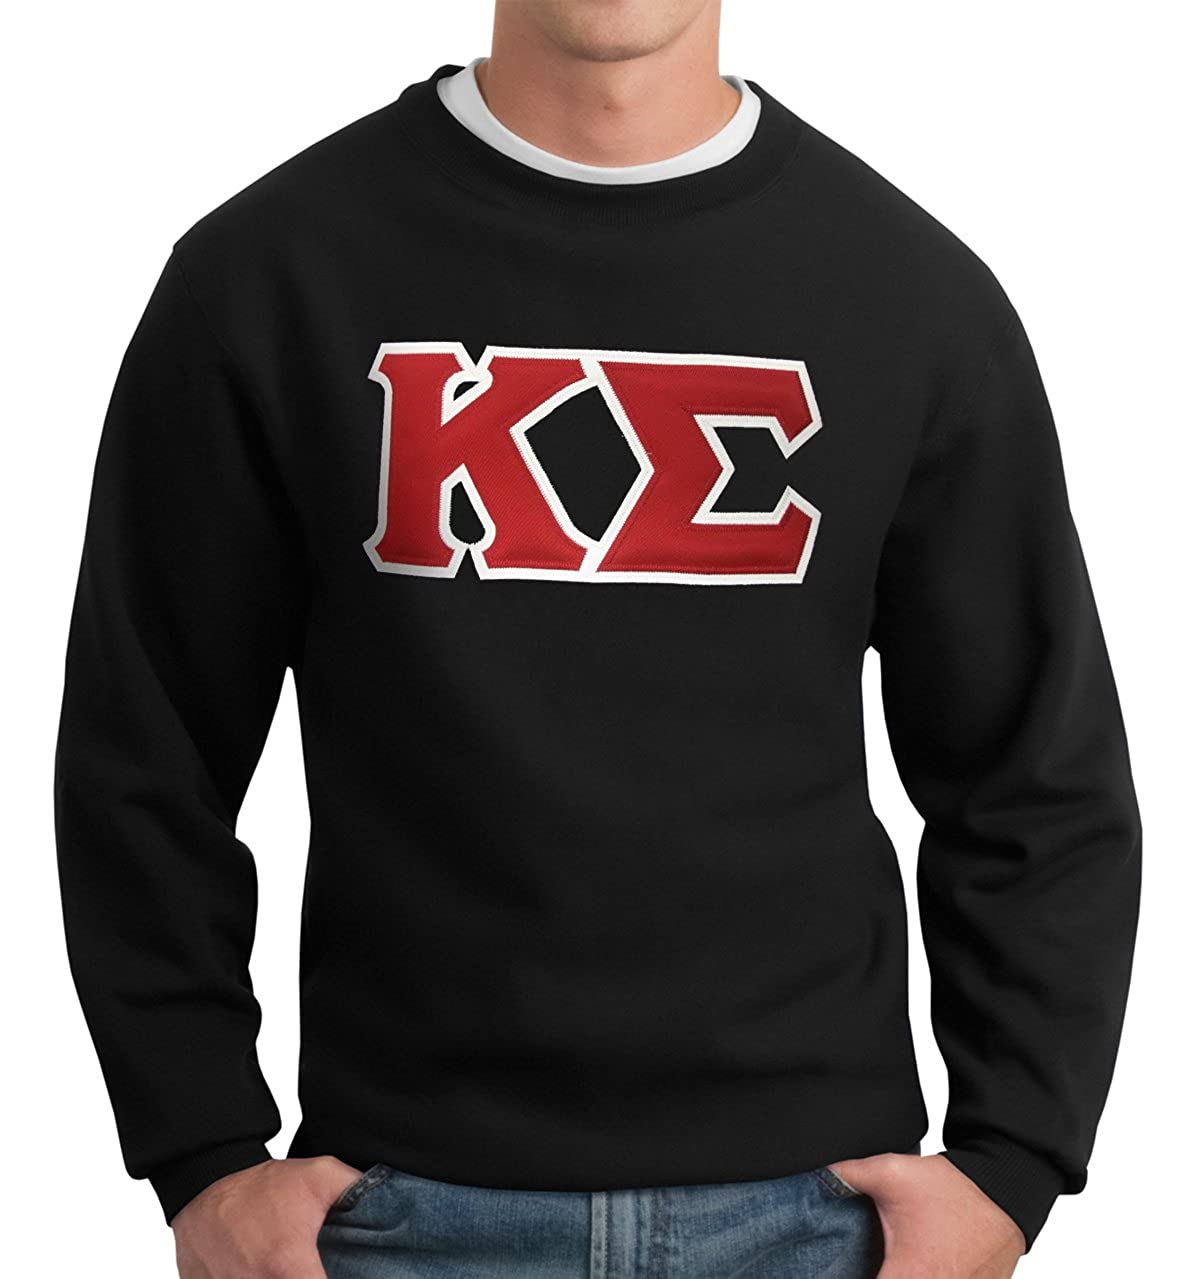 Campus Classics Kappa Sigma Crew Neck Sweatshirt with Sewn On Greek Letters